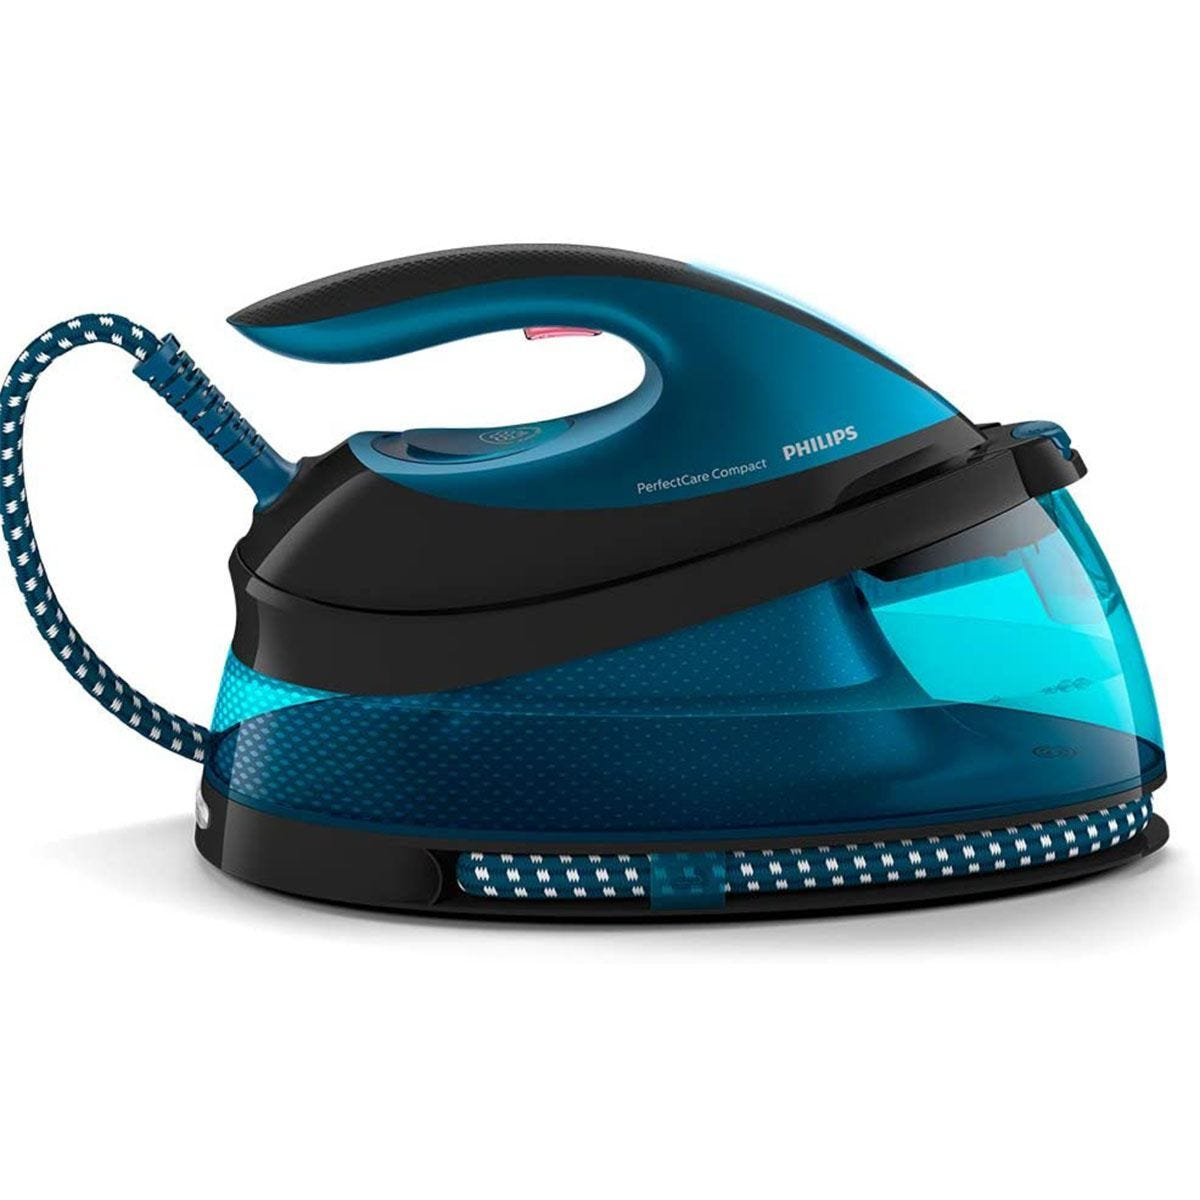 Philips GC7846/86 PerfectCare 2400W Compact Steam Generator Iron - Black & Teal